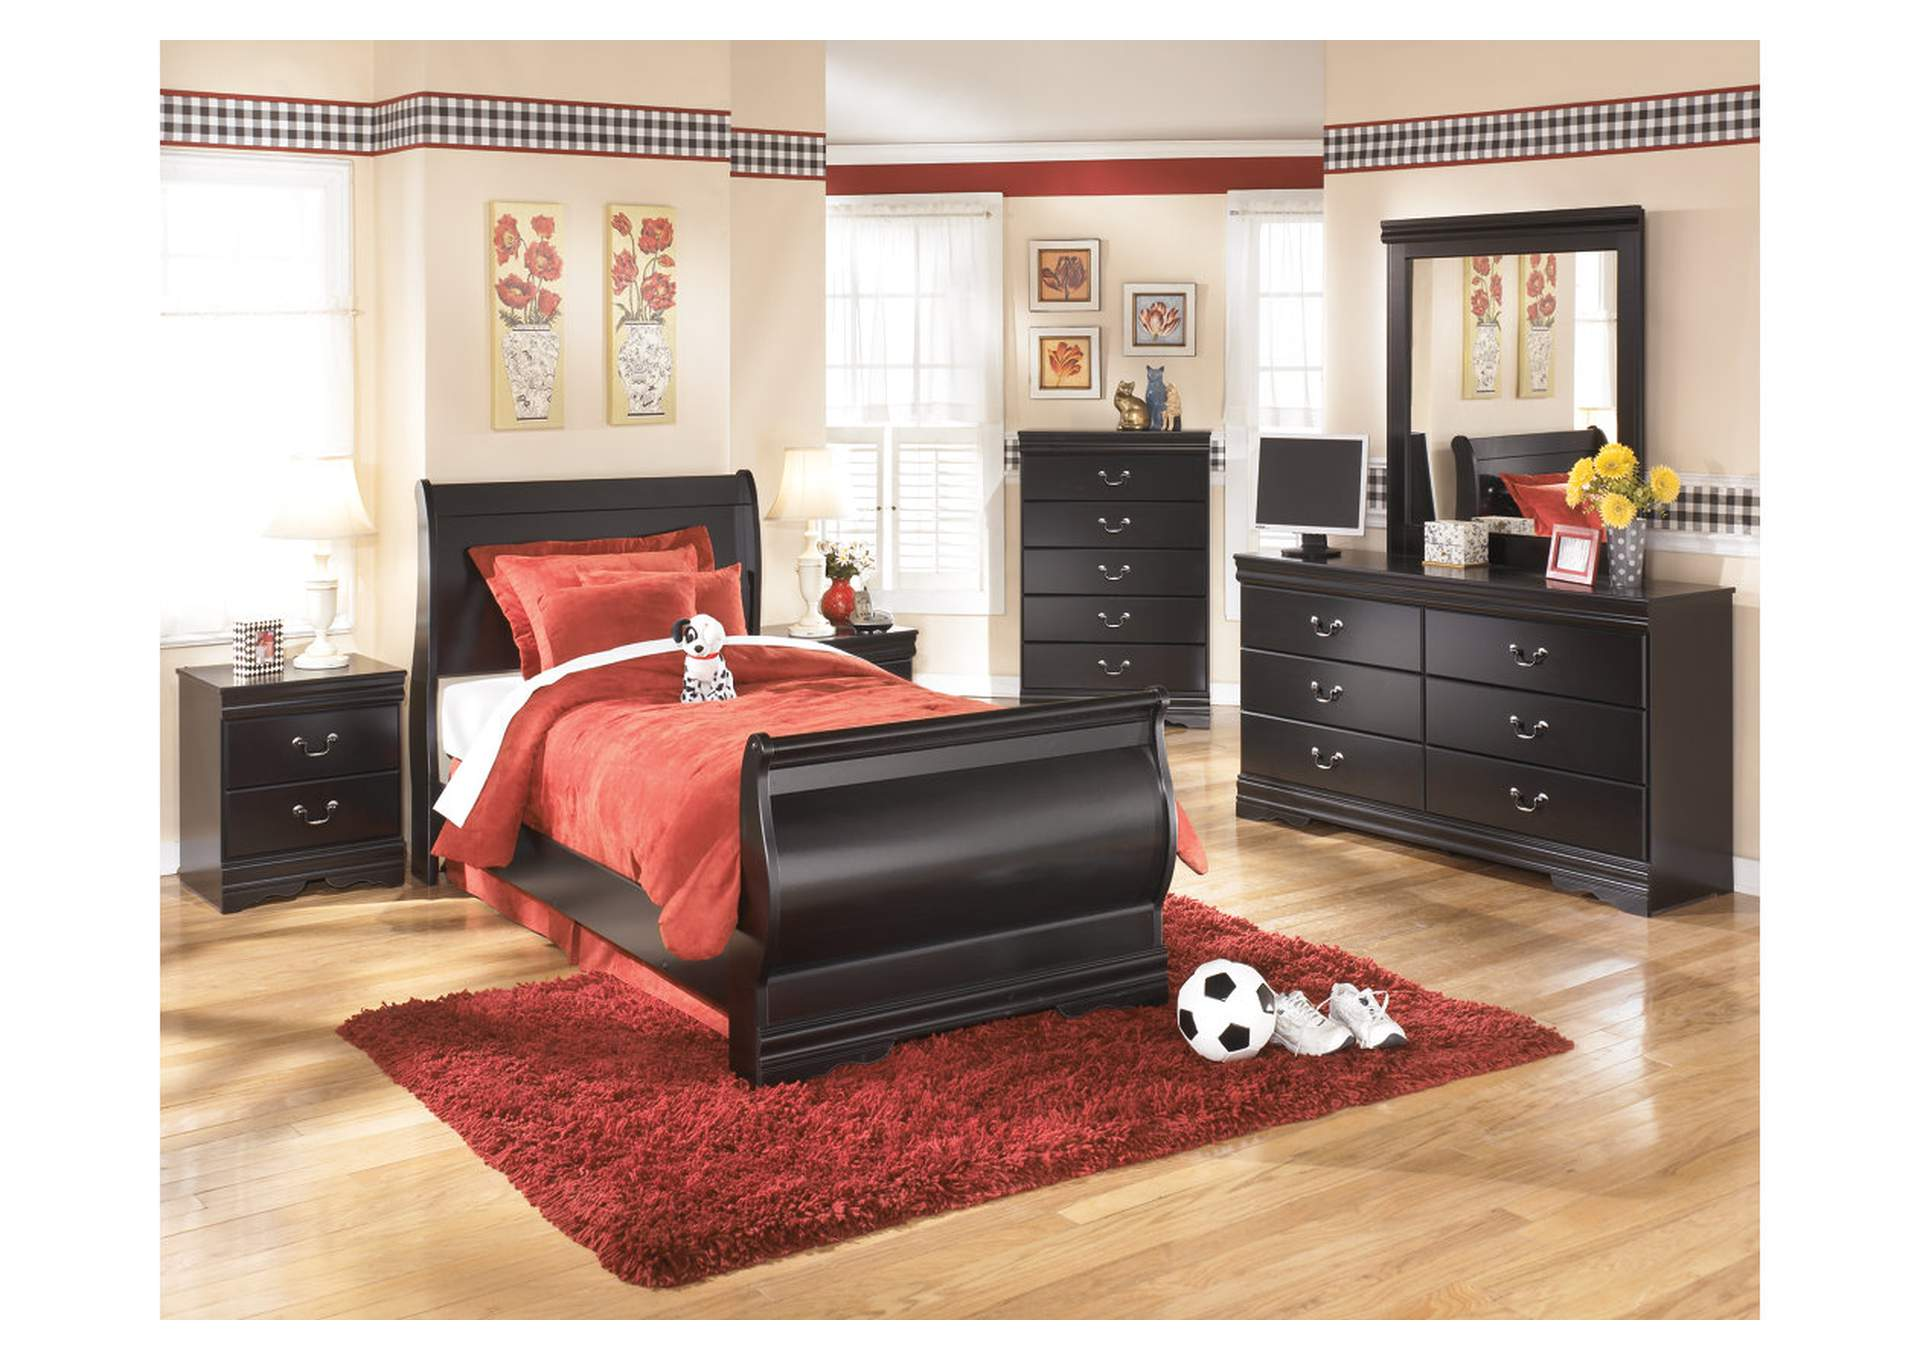 Huey Vineyard Twin Sleigh Bed w/Dresser, Mirror, Drawer Chest & Nightstand,Signature Design By Ashley